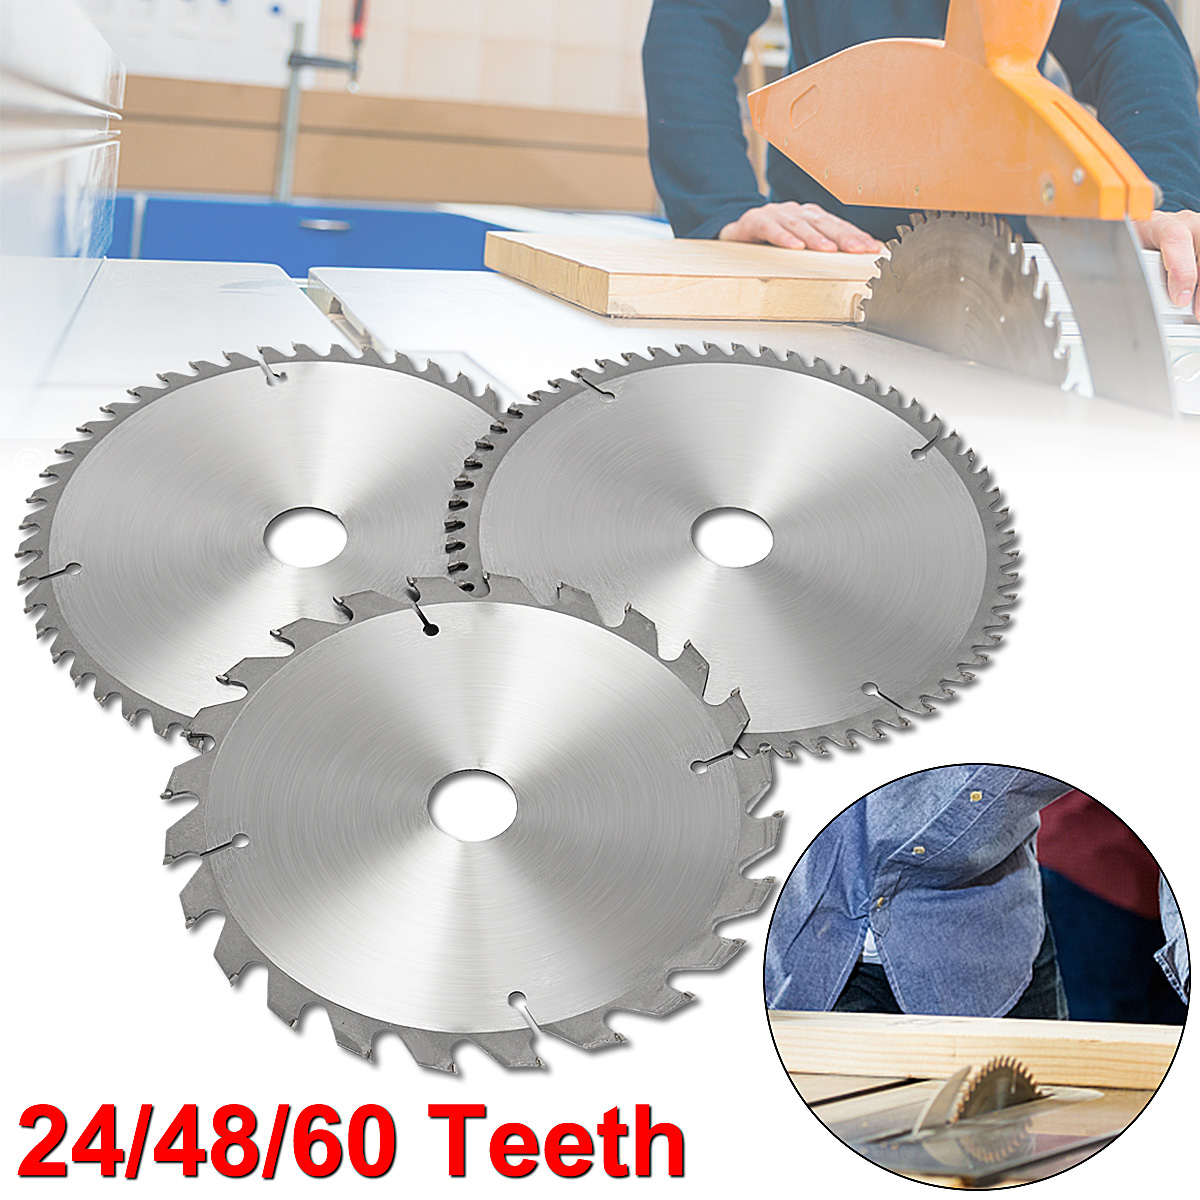 Drillpro 3 Pcs/set 210mm TCT 24/48/60T Circular Saw Blade For Home Decoration Purpose Wood/Thin Aluminum General Cutting